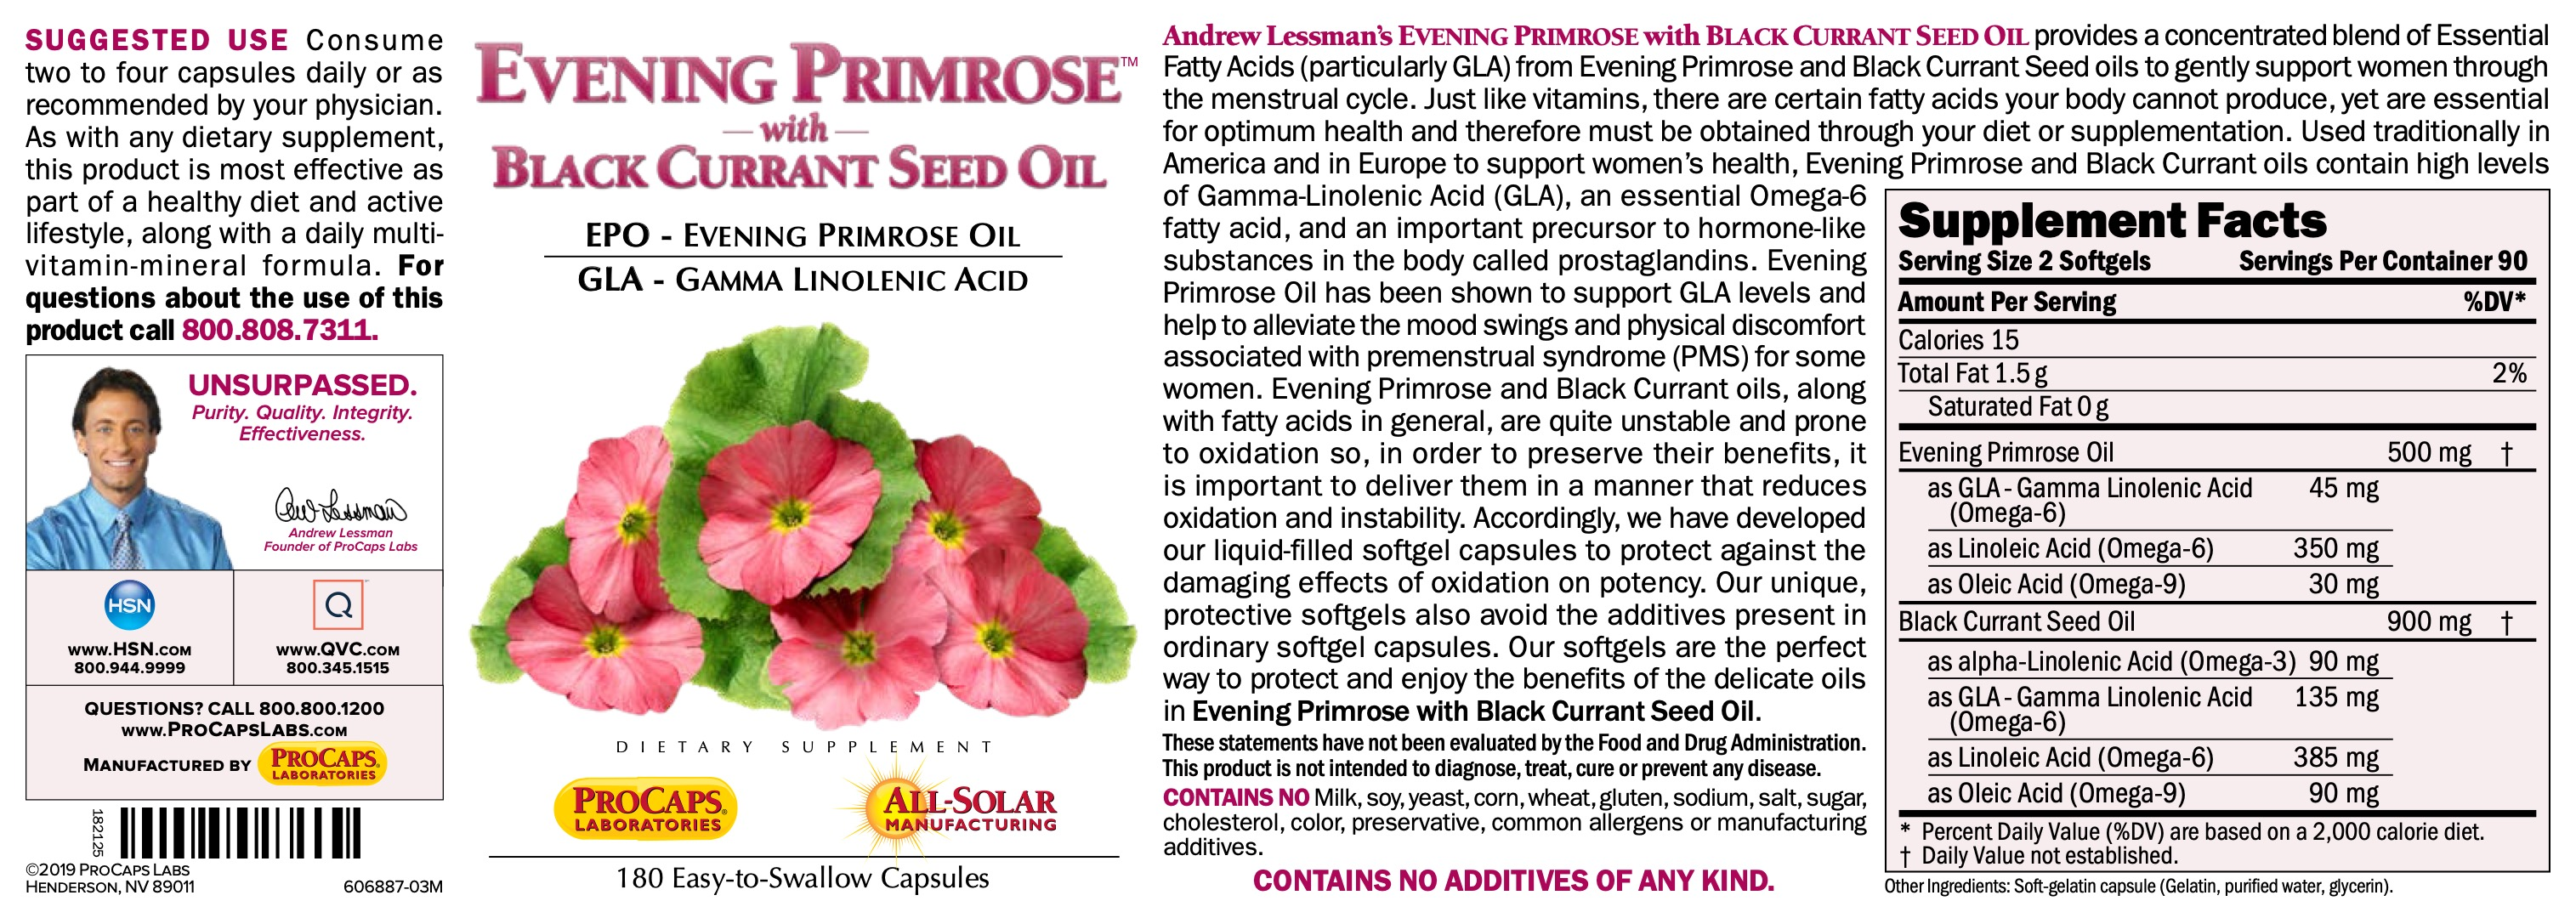 Evening-Primrose-with-Black-Currant-Seed-Oil